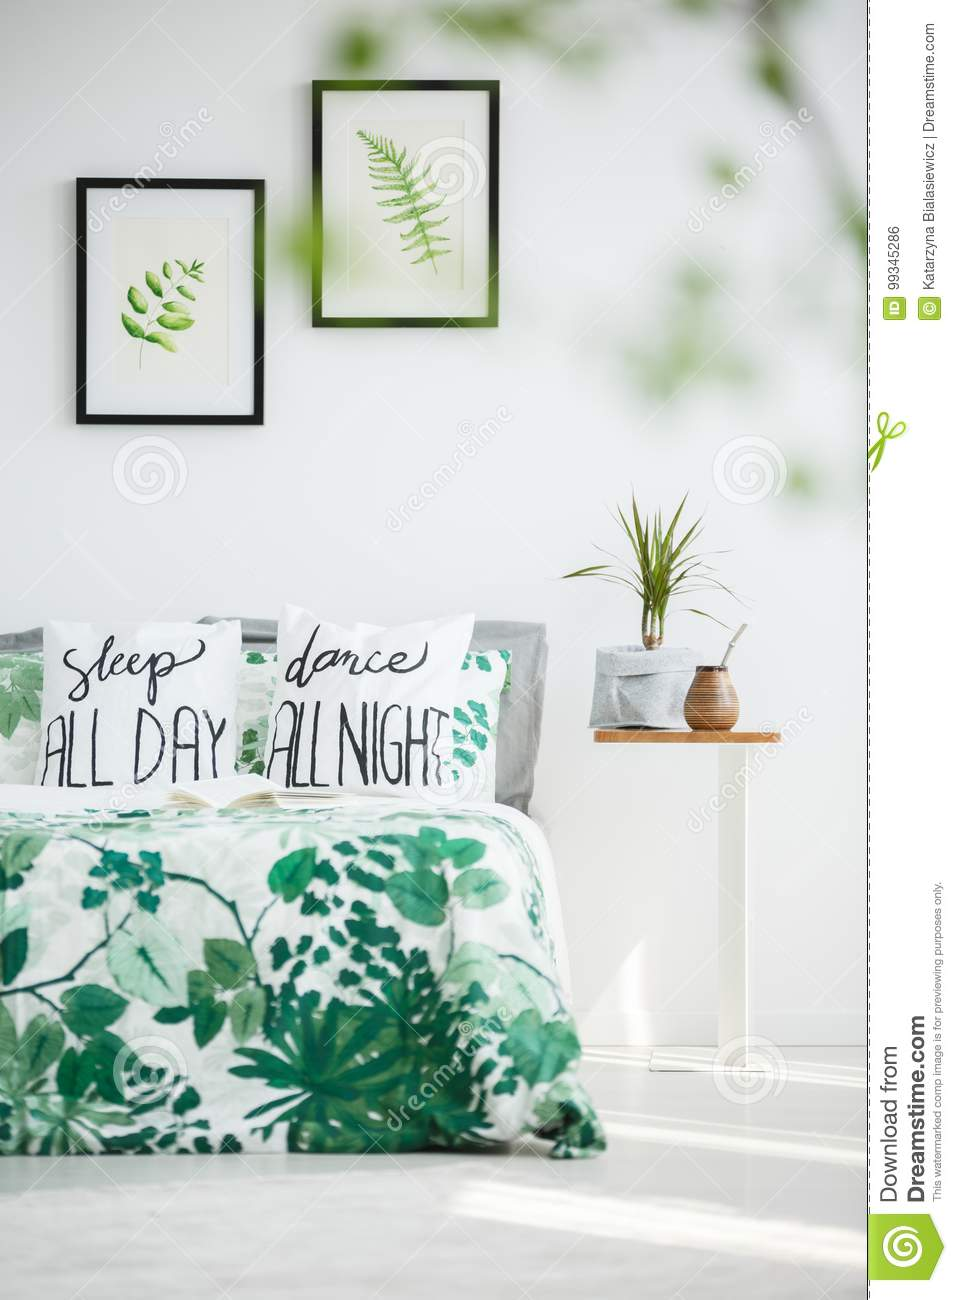 Bedroom With Plant And Bombilla Stock Photo - Image of